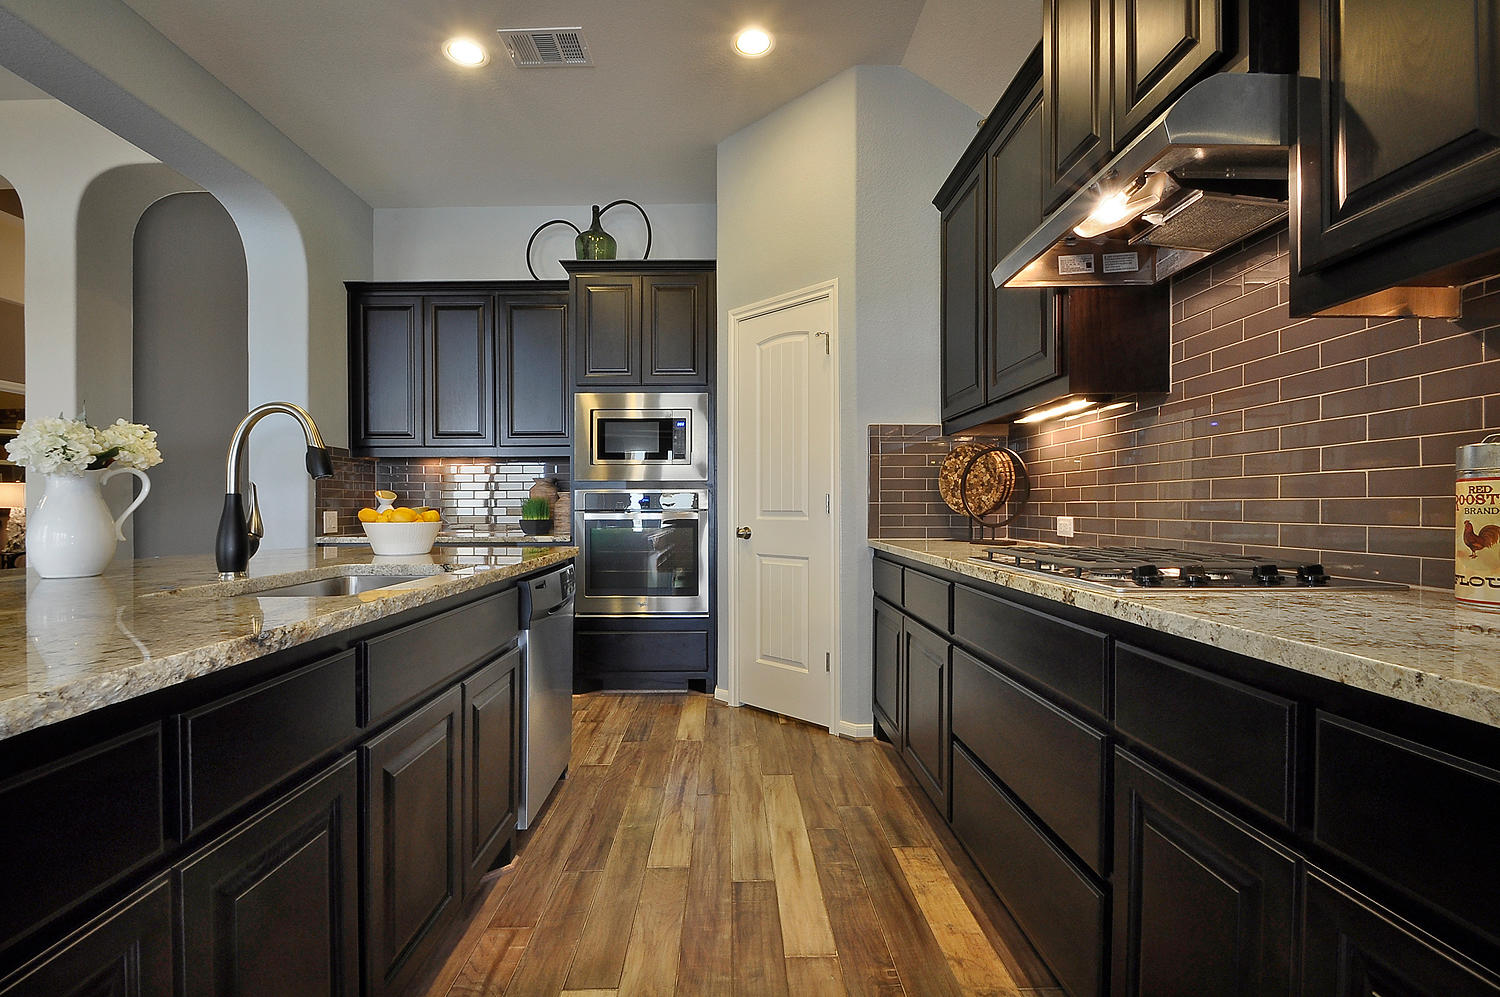 Burrows Cabinets kitchen with center island in Beech with Espresso finish